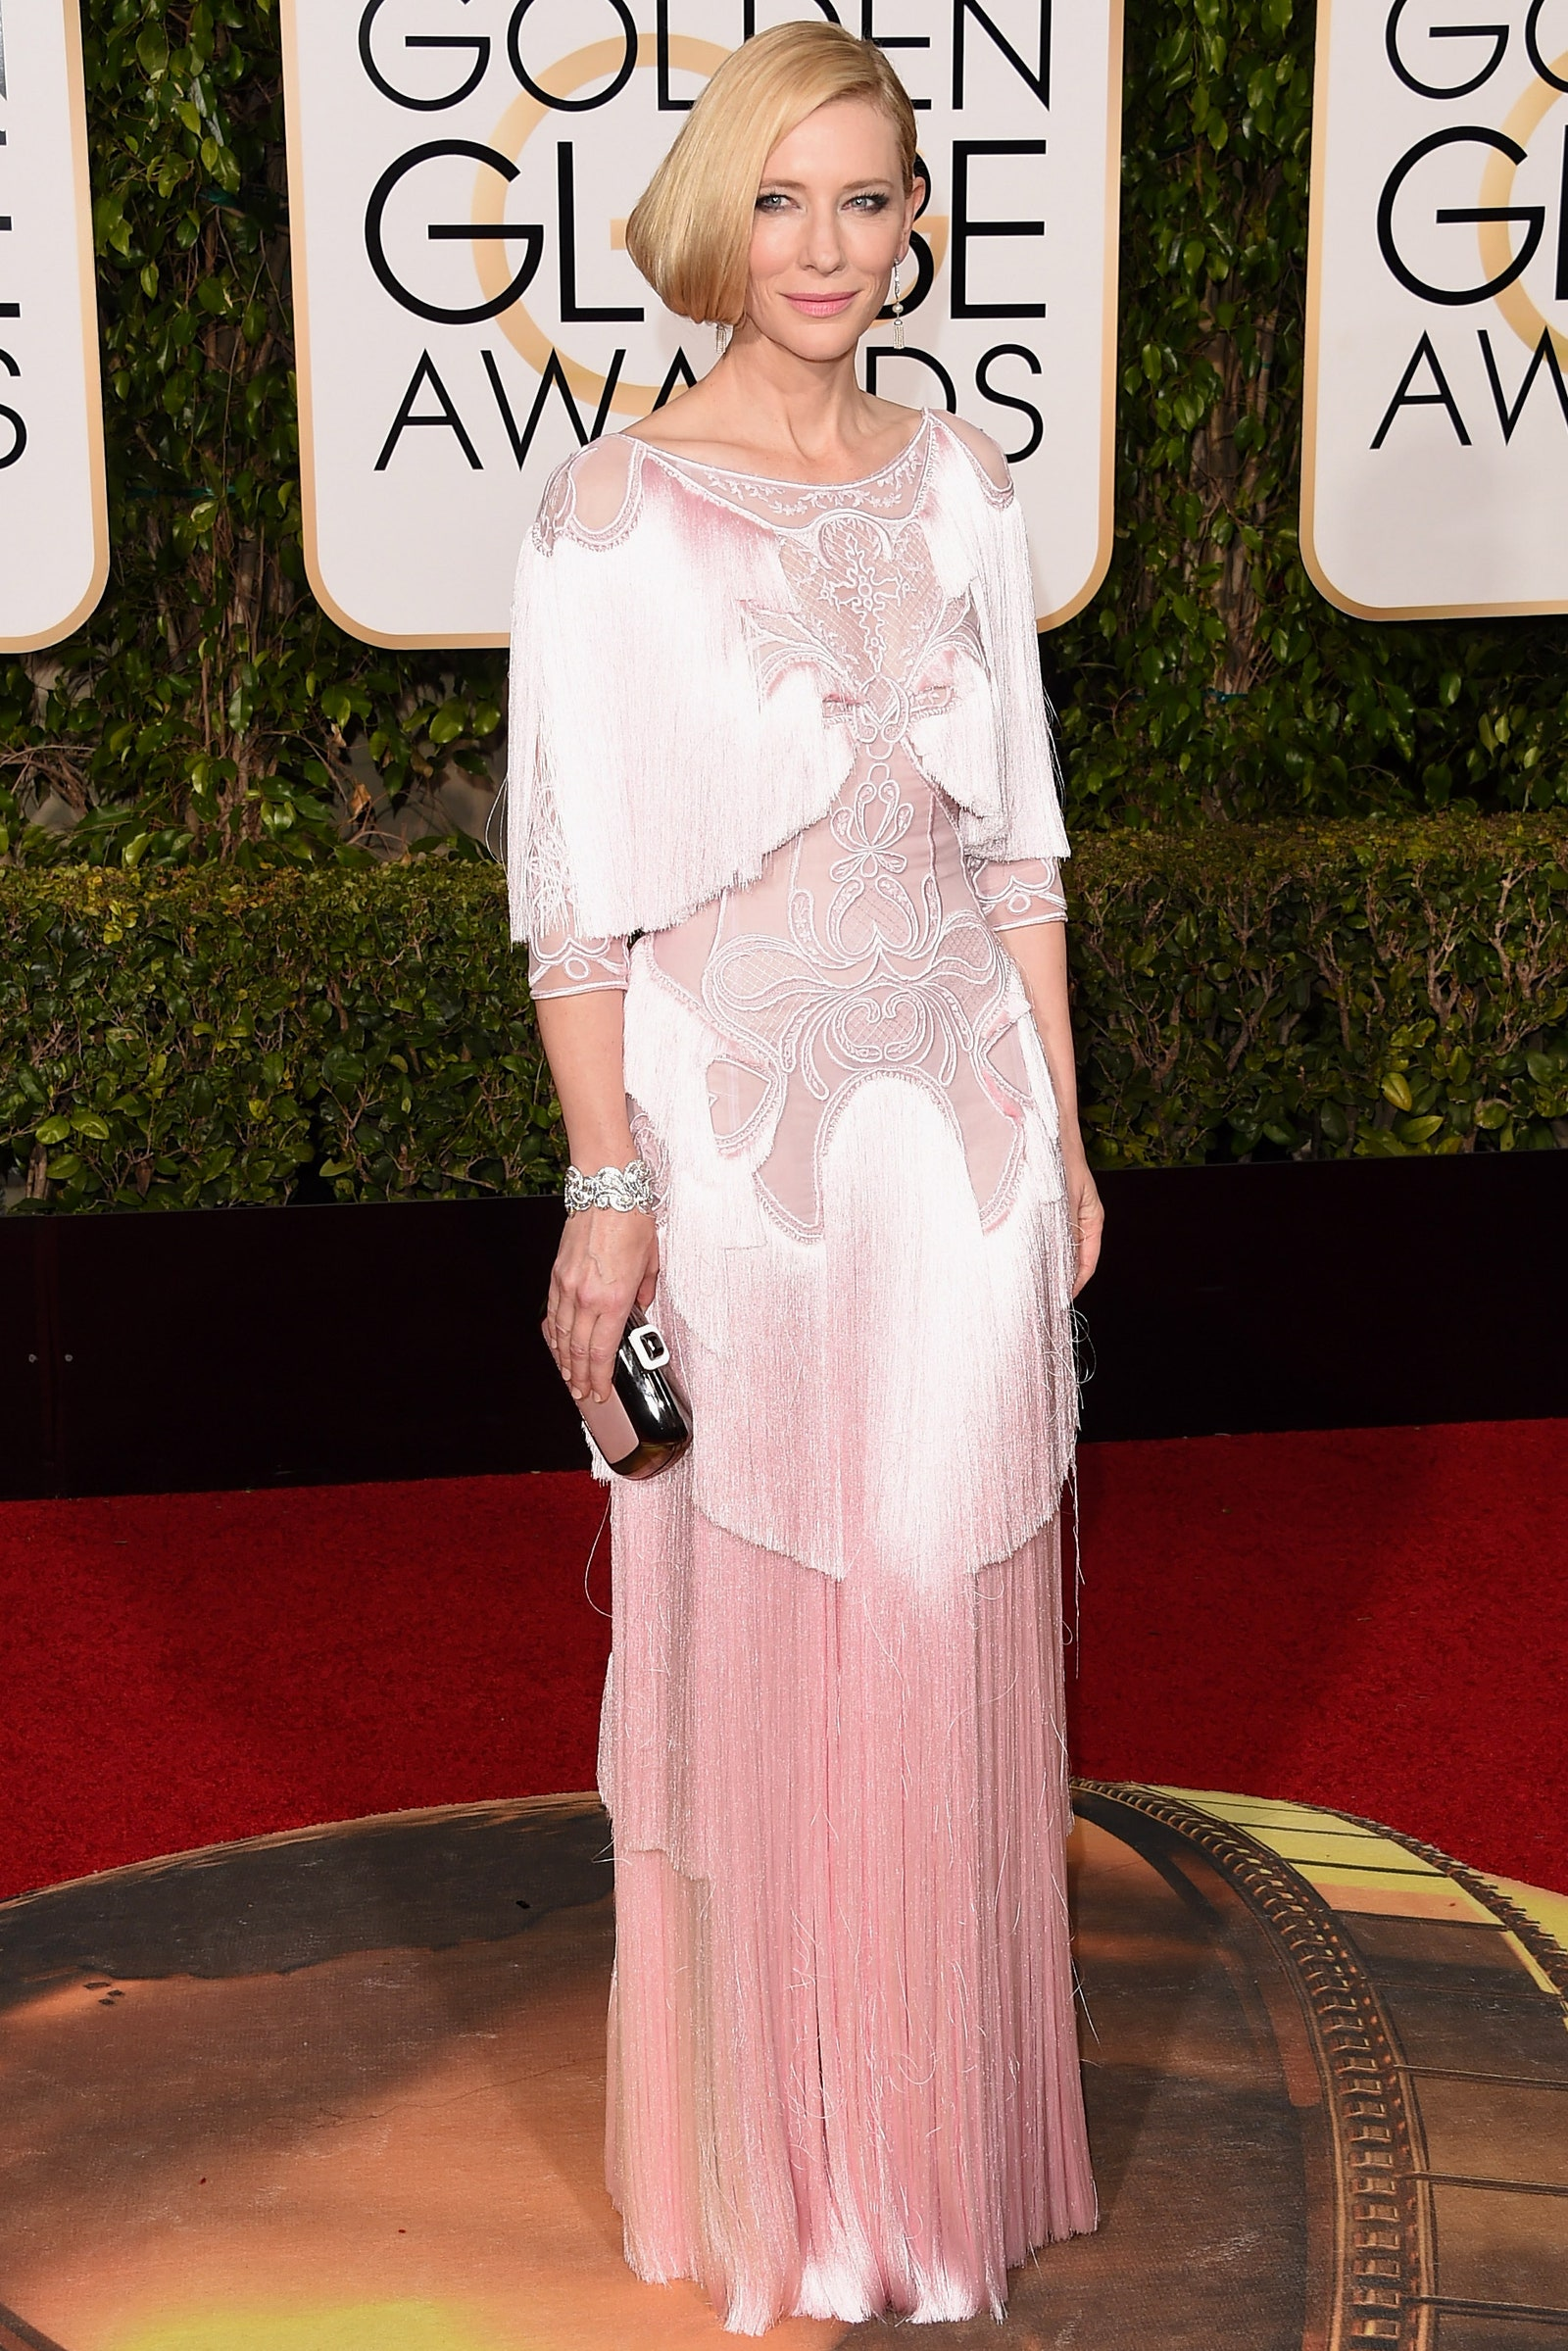 38_cementing_her_status_as_a_fashion_icon_blanchett_wore_a_blush-pink_givenchy_number_with_dazzling_embroidery_and_fringe_detail_golden_globes_2016.jpg